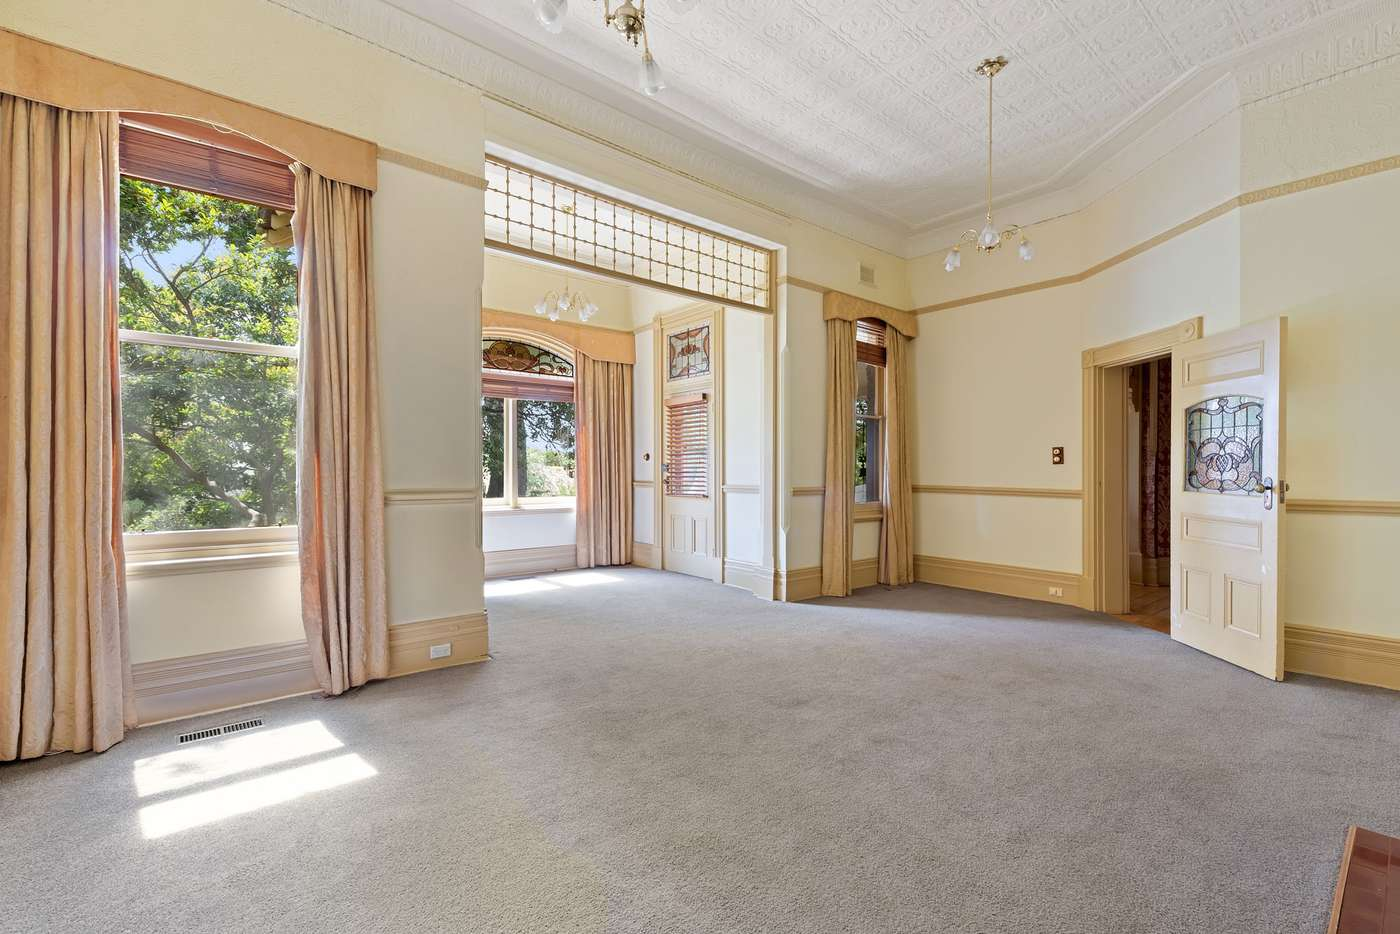 Fifth view of Homely house listing, 6 Logan Street, Canterbury VIC 3126